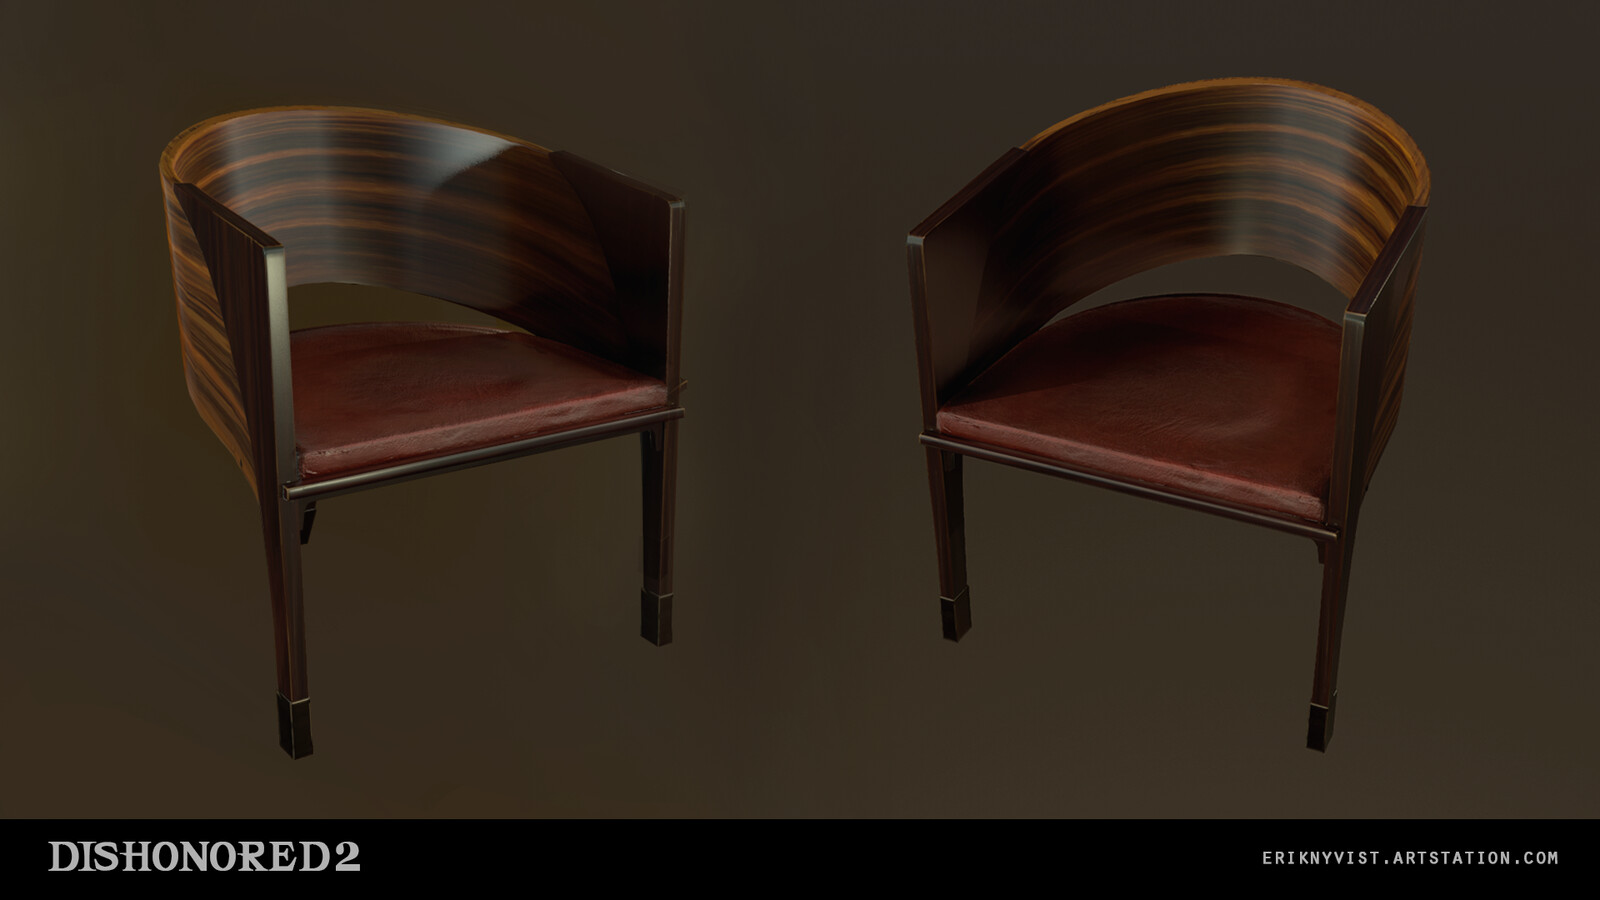 Dishonored 2 Chair